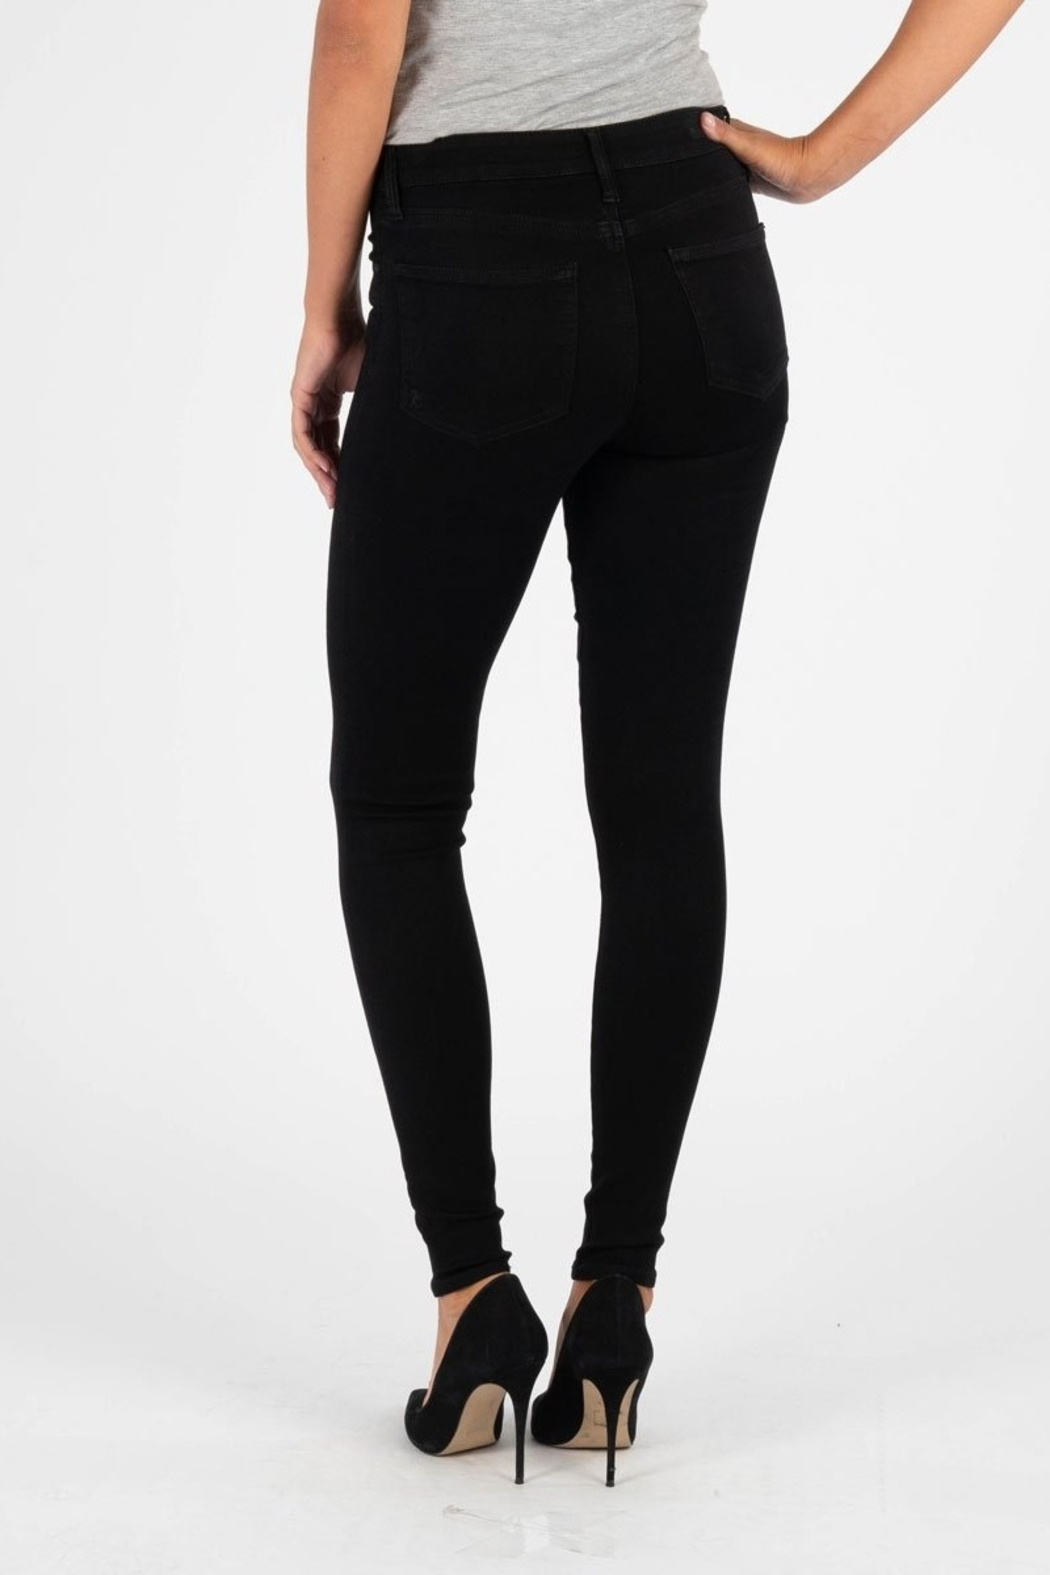 Kut from the Kloth MIA HIGHRISE SKINNY - Back Cropped Image